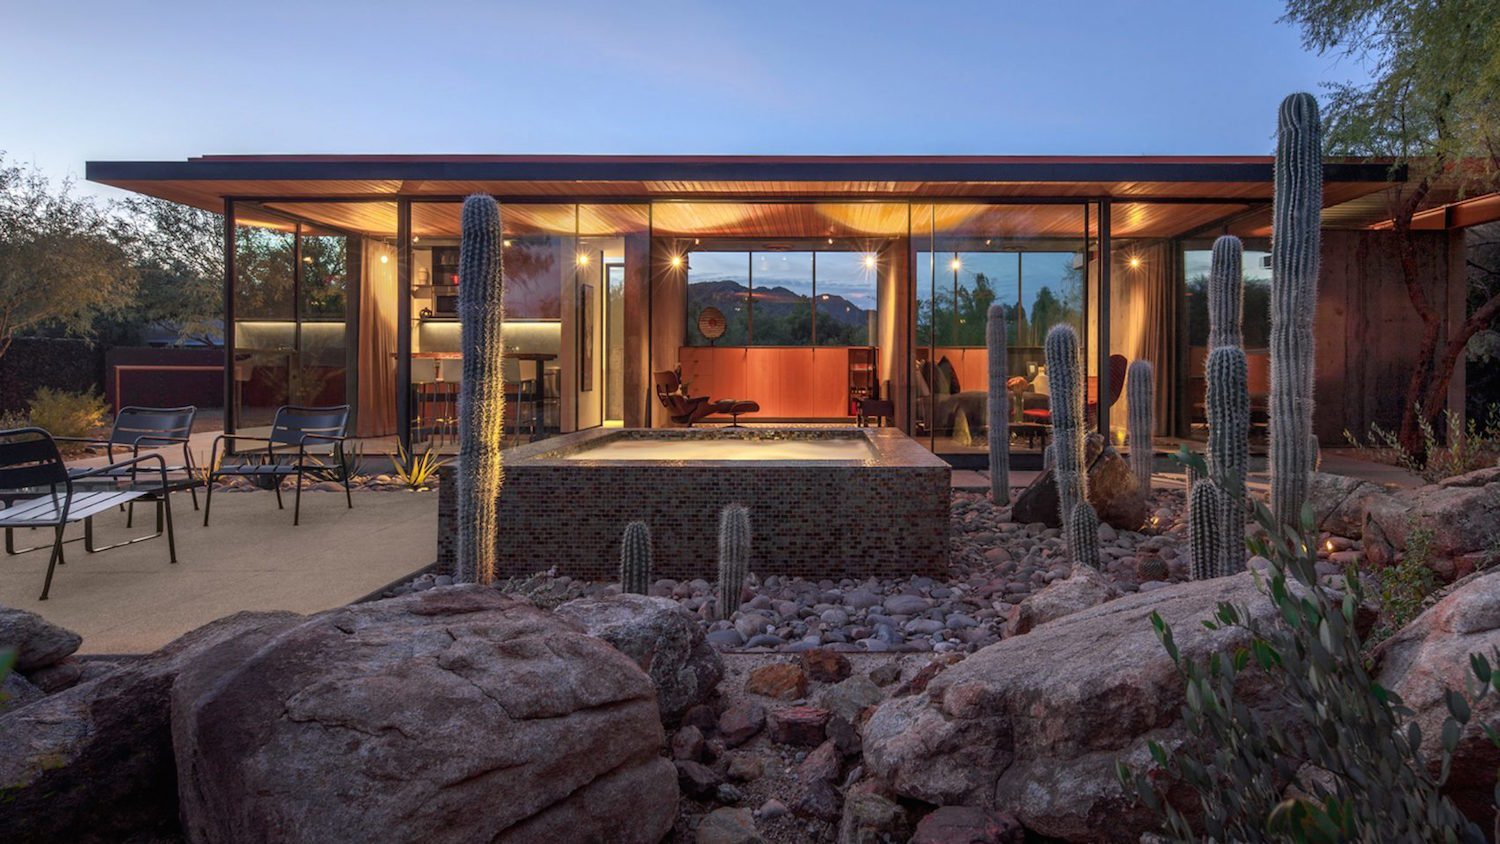 An Old Horse Barn Is Repurposed As A Chic Desert